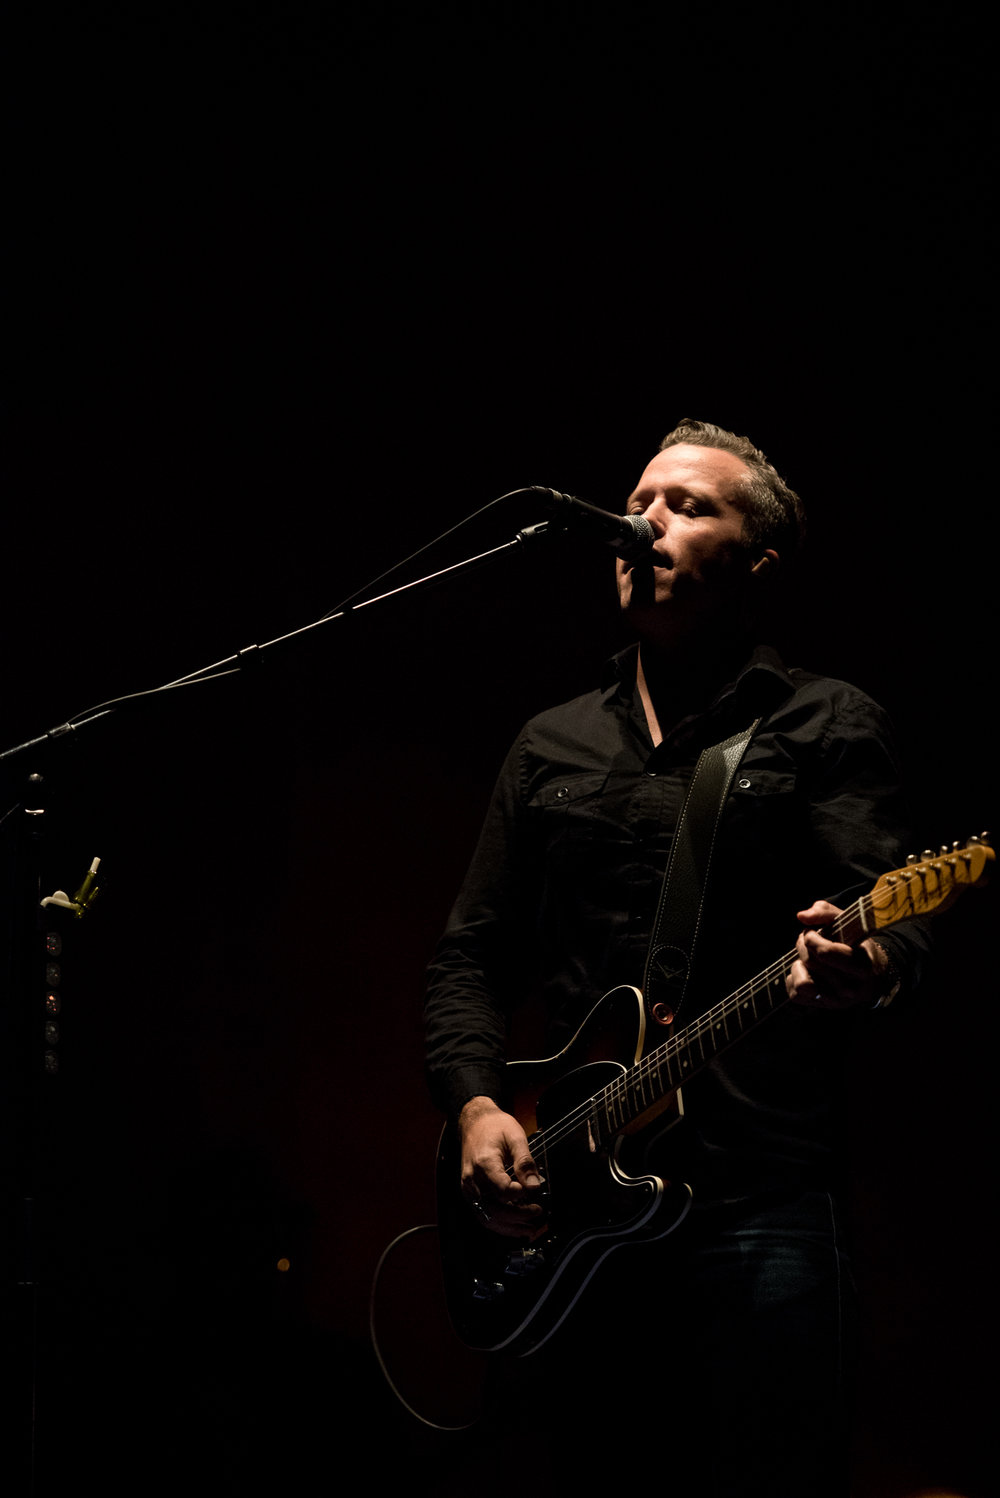 Jason Isbell performs at Roots N Blues N BBQ in Columbia, Mo., on Saturday, October 1, 2016. This was Isbell's second performance at the festival.